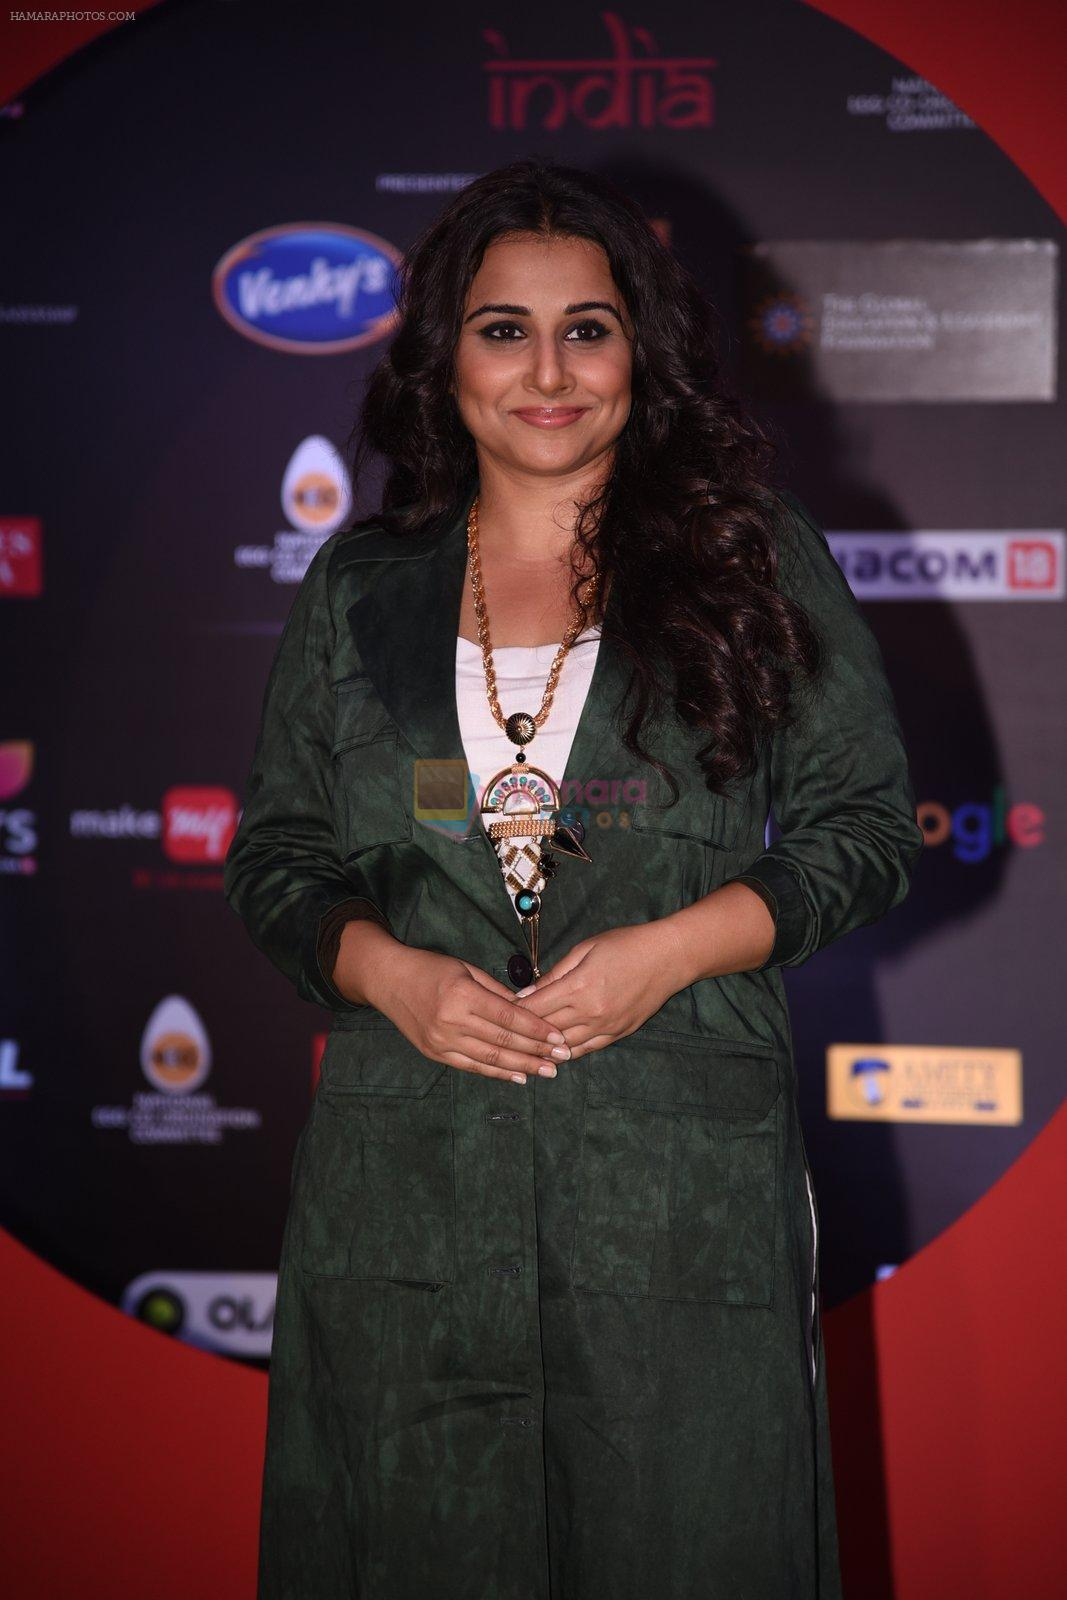 Vidya Balan at Global Citizen Festival India 2016 on 18th Nov 2016